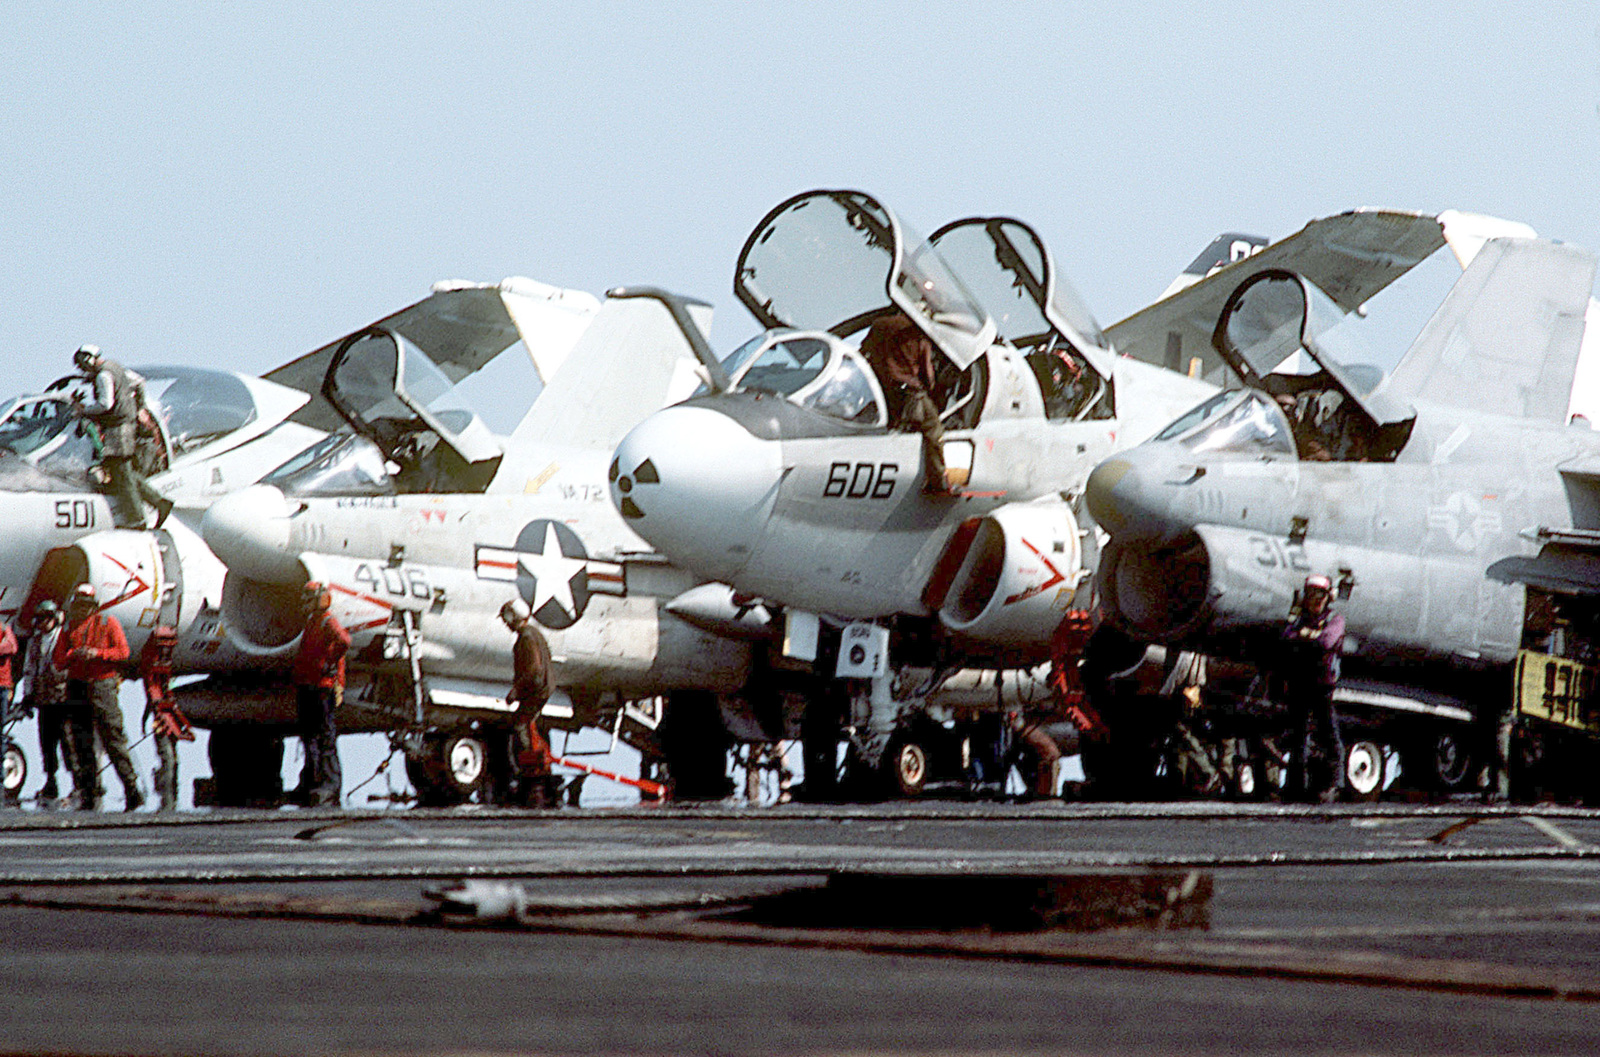 Among the aircraft parked on the flight deck of the aircraft carrier USS AMERICA (CV 66) during Exercise OCEAN VENTURE '84 are (left to right) an A-6E Intruder, an A-7E Corsair II, an EA-6B Prowler and another A-7E